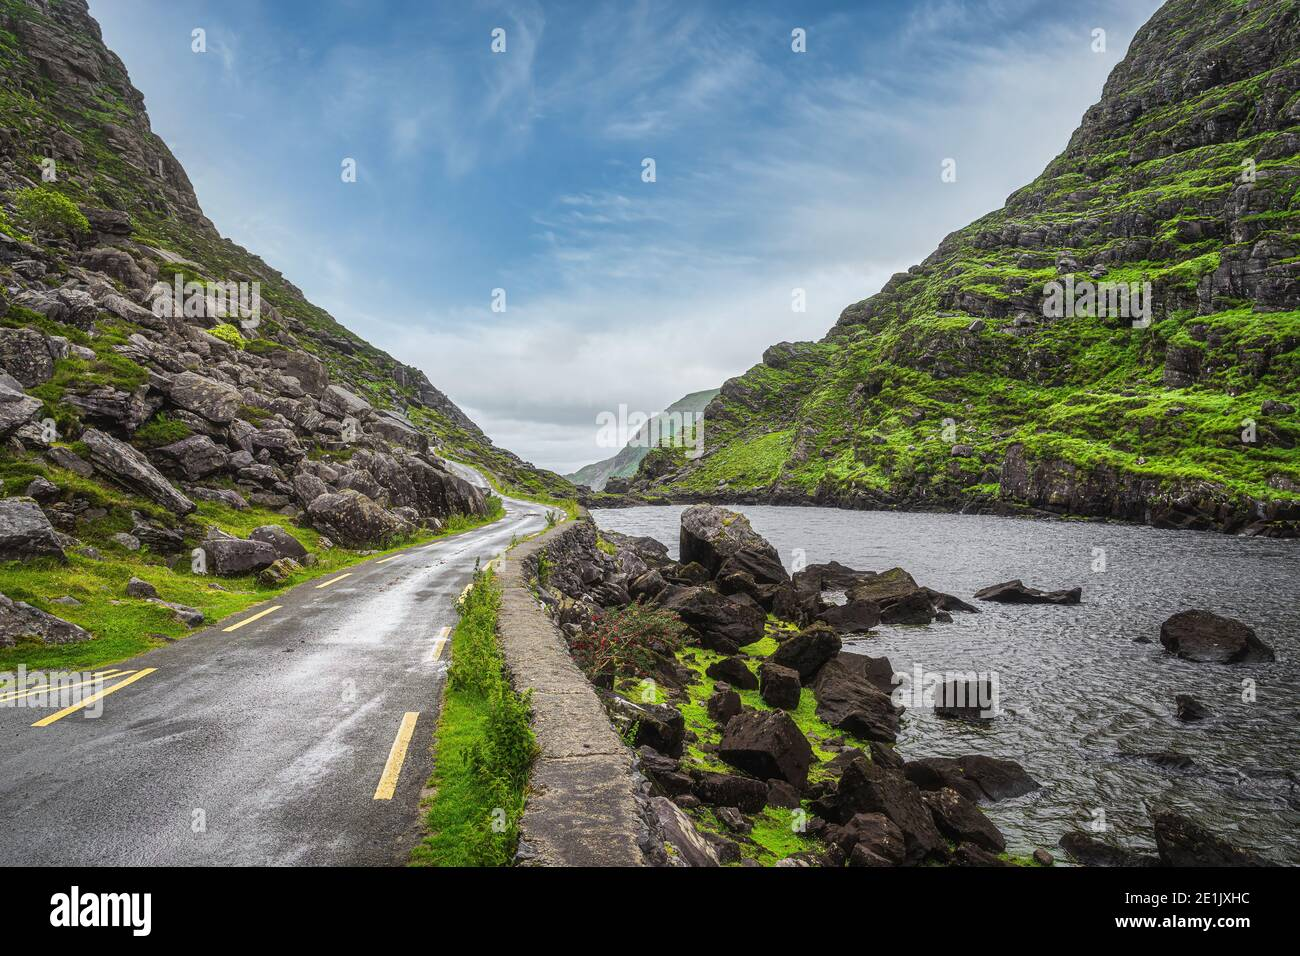 Narrow winding road running alongside lake and stream in green valley, Gap of Dunloe in Black Valley, Ring of Kerry, County Kerry, Ireland Stock Photo